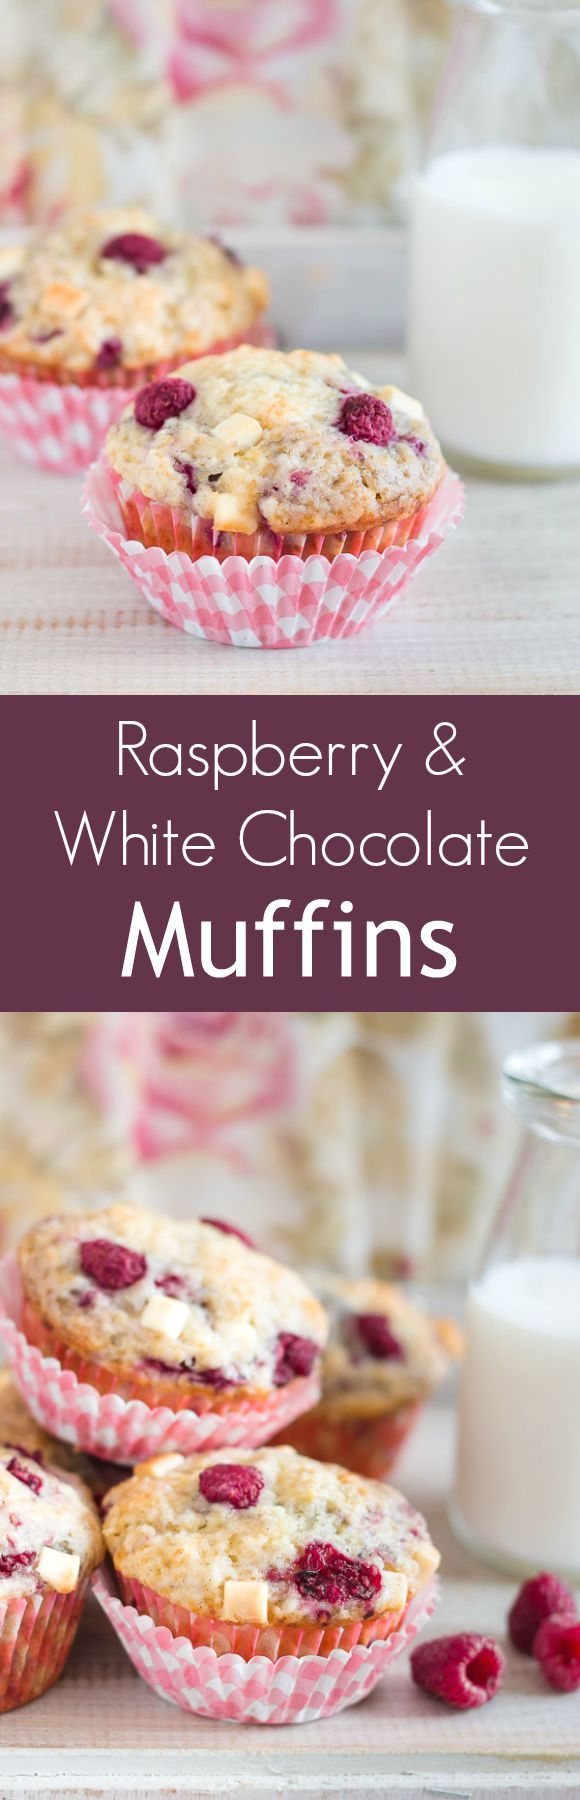 Moist and fluffy raspberry and white chocolate muffins - a heavenly combination!